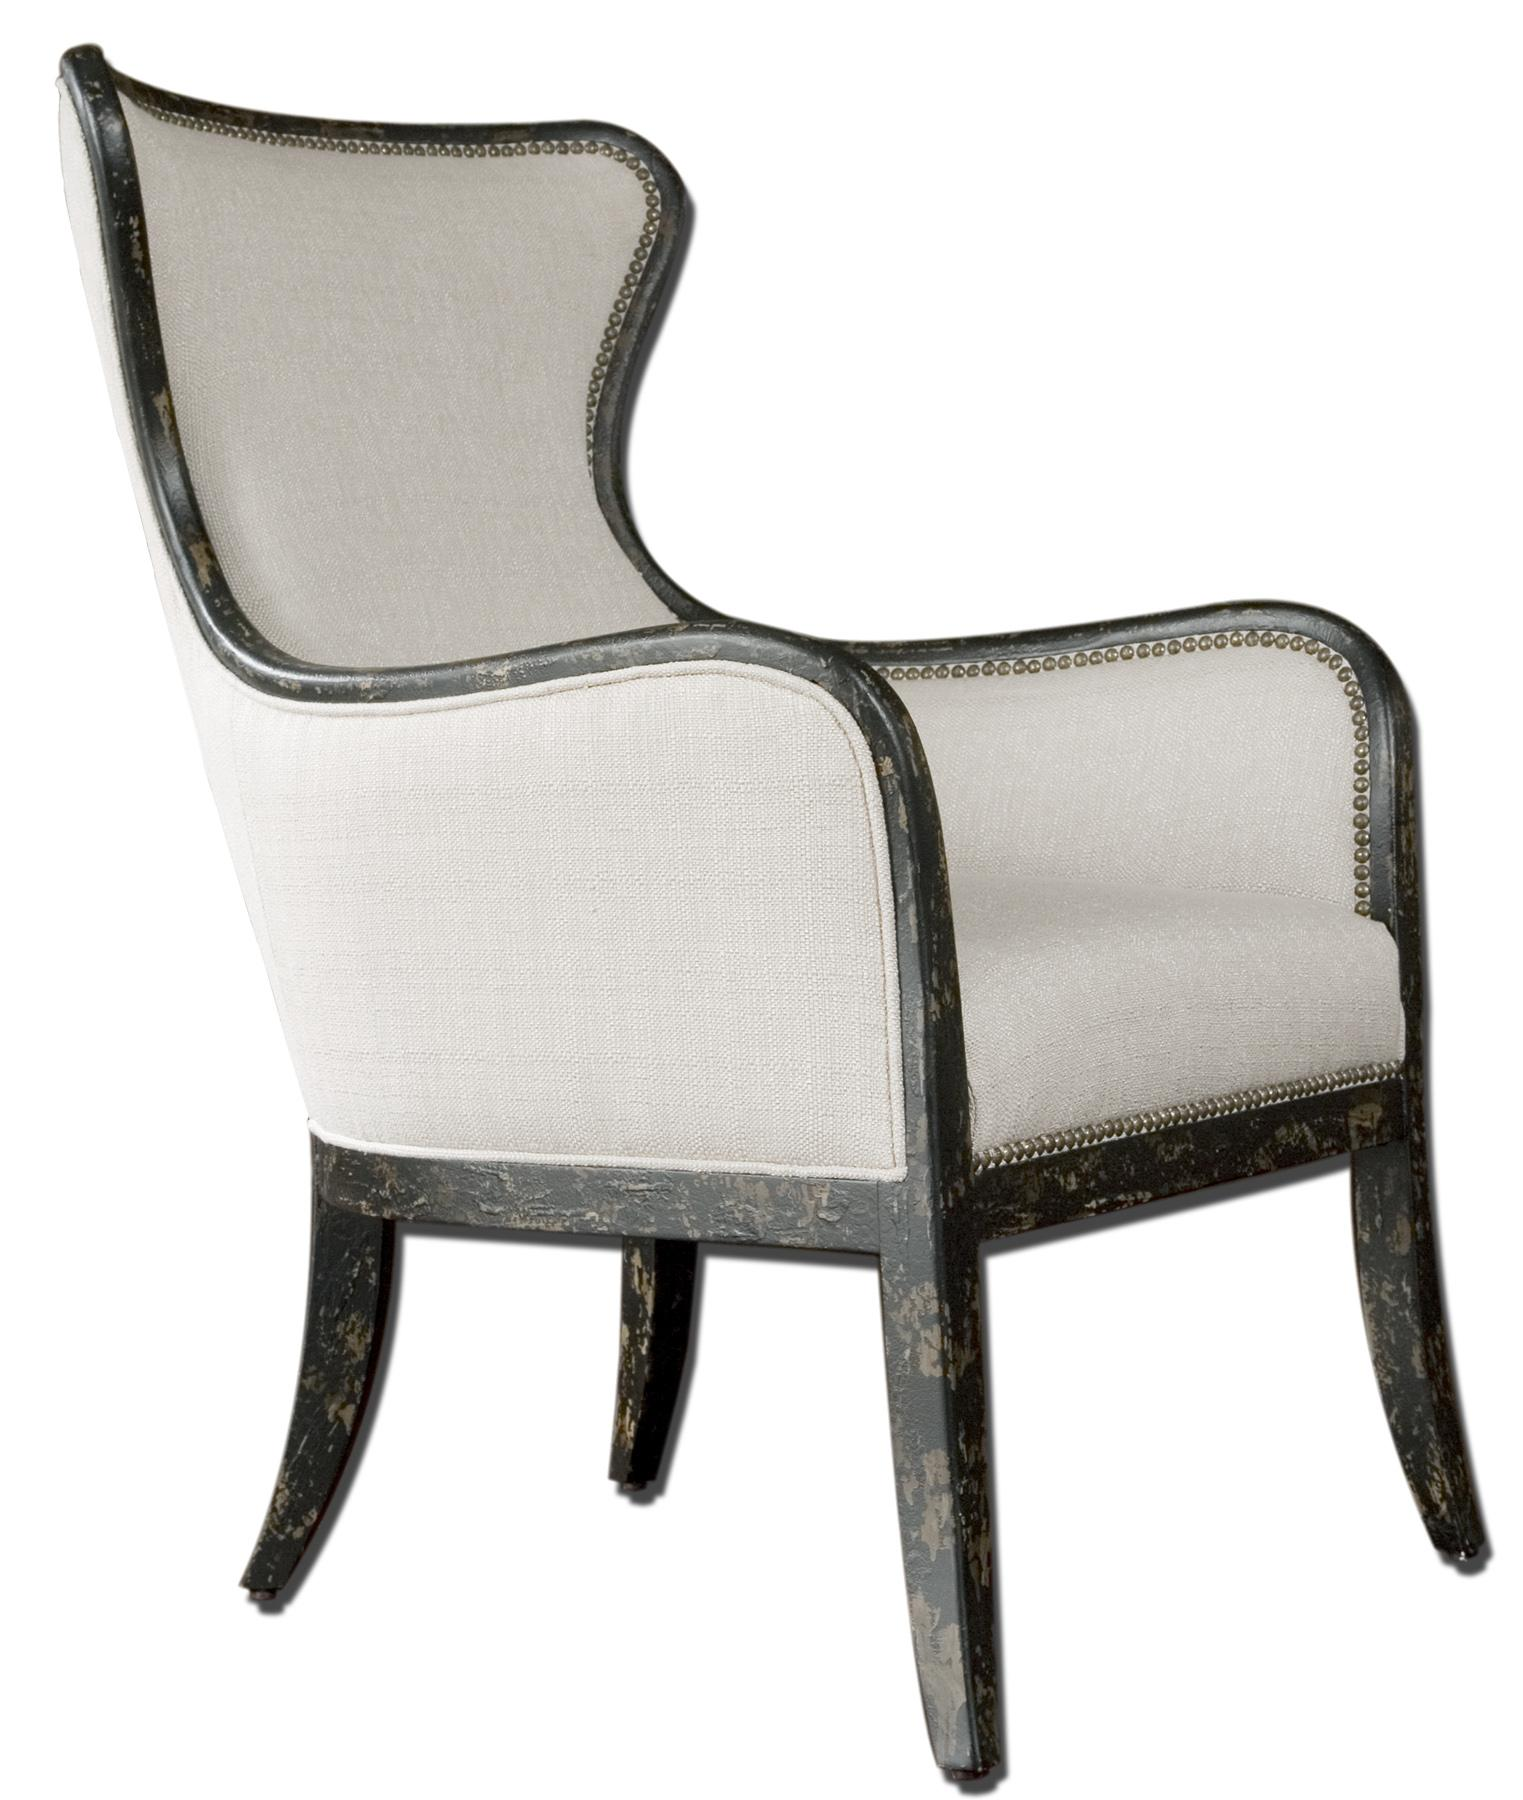 Wing Back Chairs Accent Furniture Accent Chairs Sandy Modern Wing Chair By Uttermost At Dunk Bright Furniture